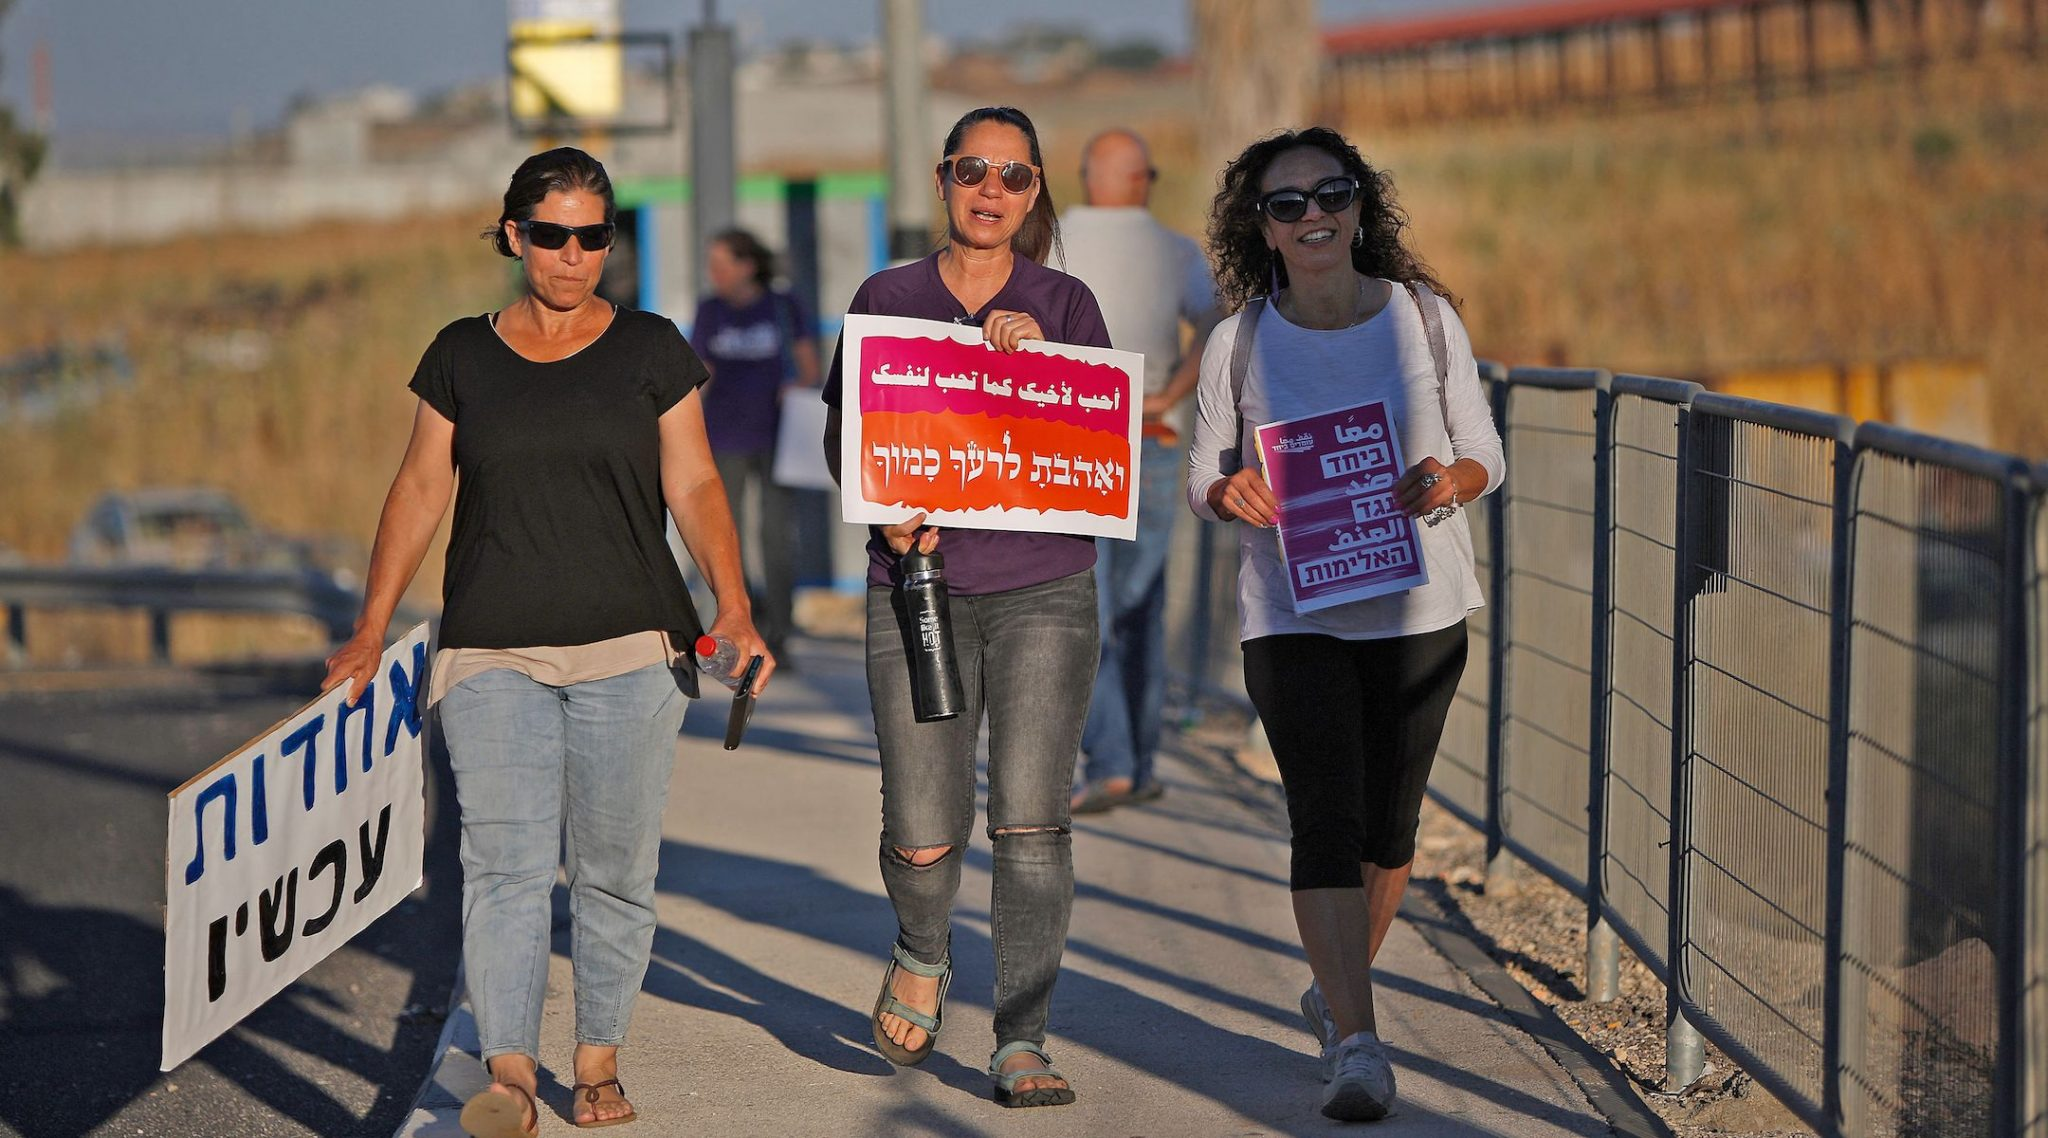 three middle-aged women walk down a sidewalk holding signs in hebrew and arabic